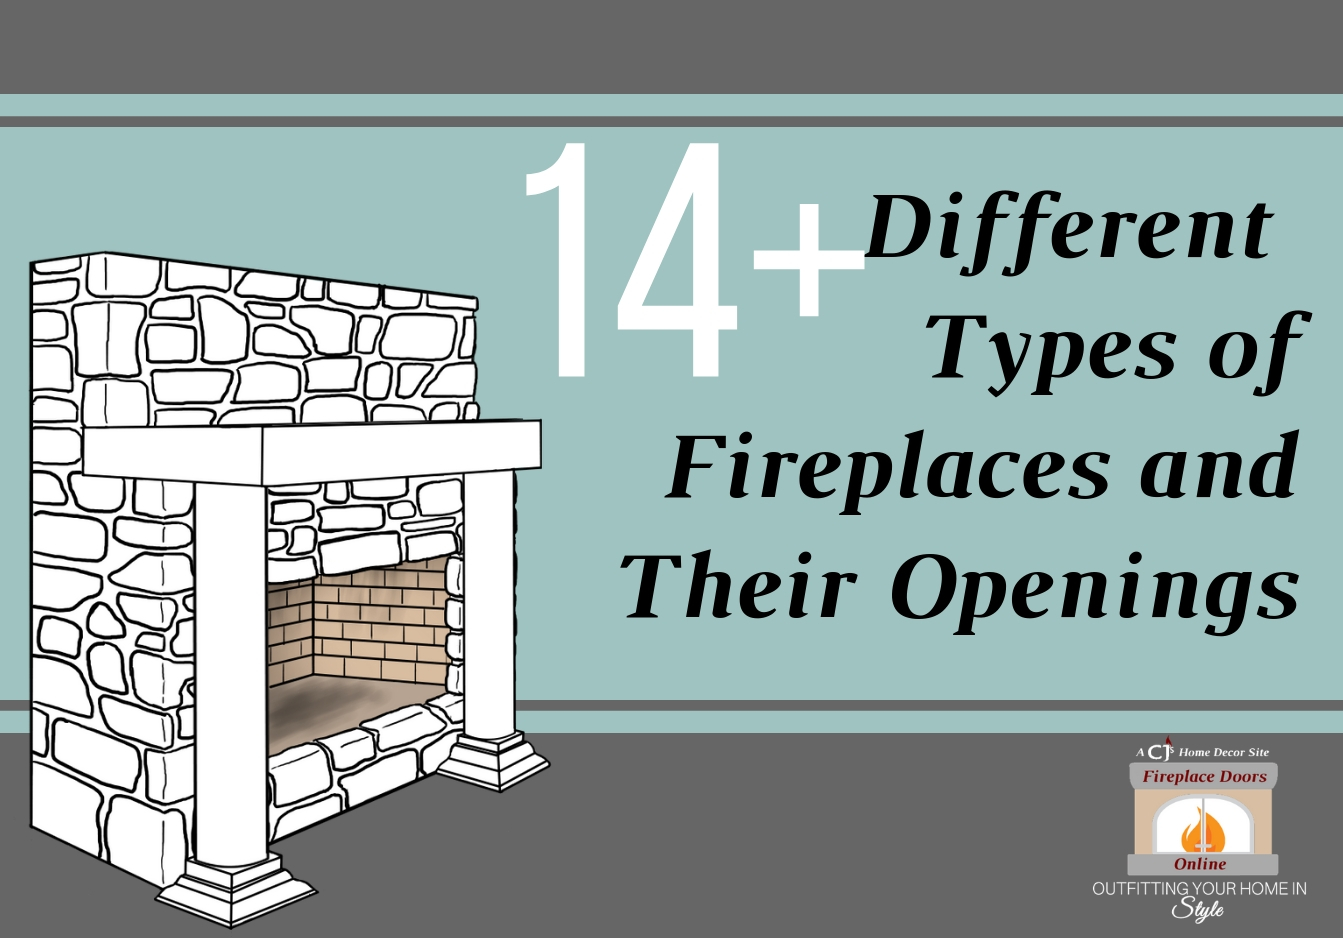 14+ Different Types of Fireplace and Their Openings